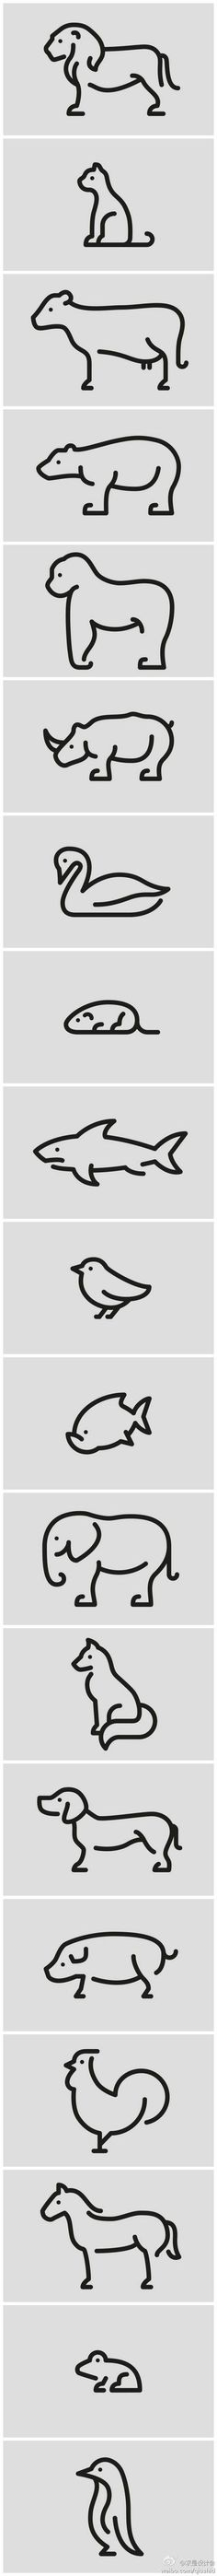 Animal icons – line art